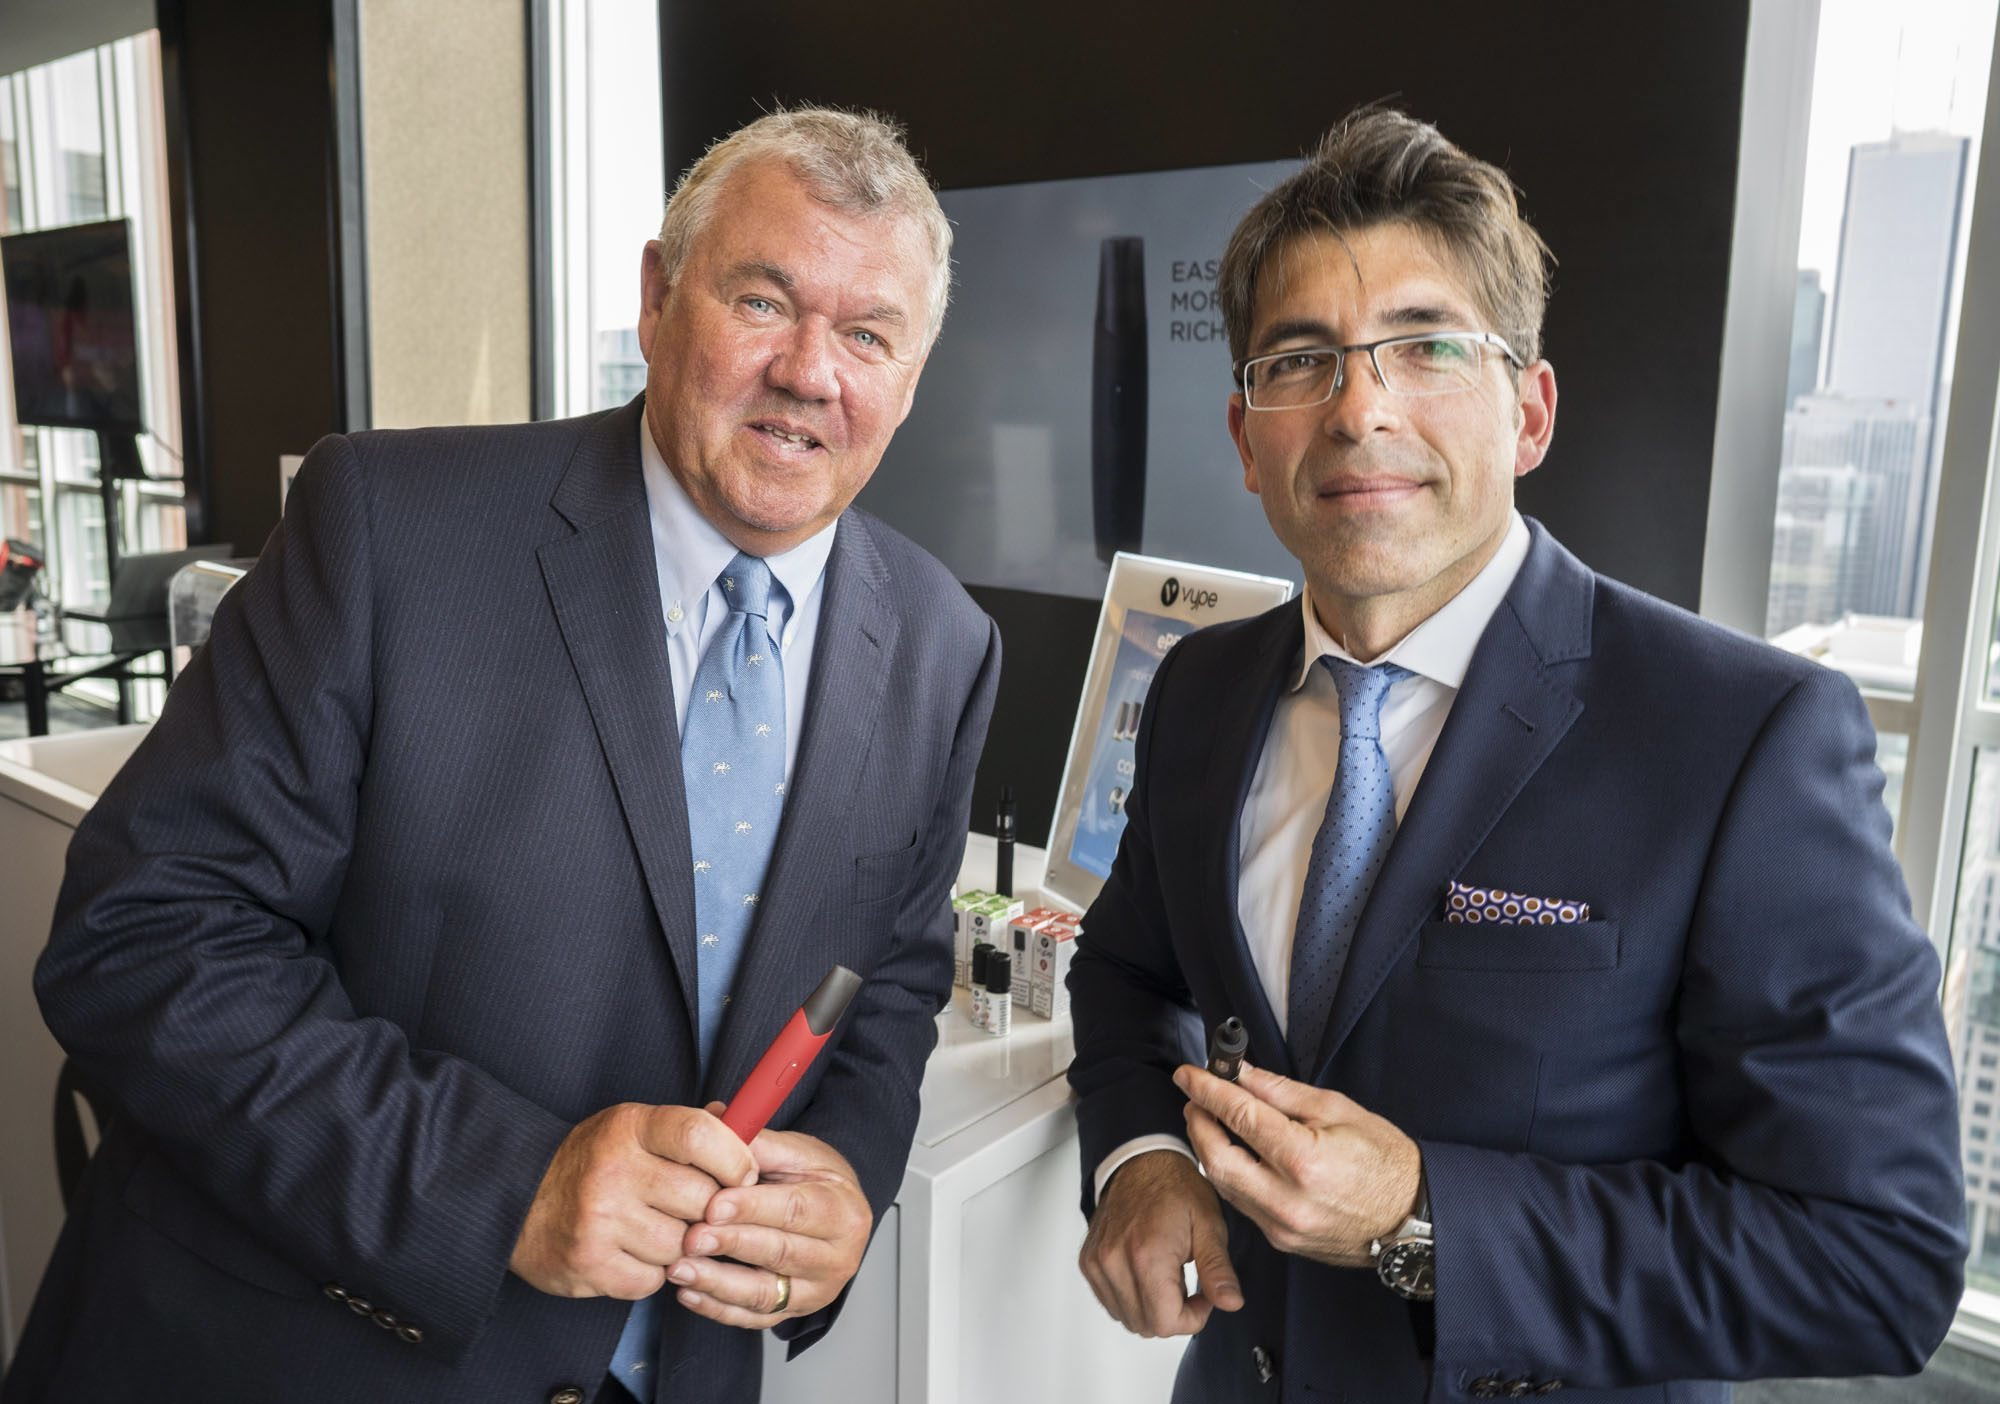 Chris Proctor, chief scientific officer of British American Tobacco, left, and Jorge Araya, president and CEO of Imperial Tobacco Canada, a subsidiary of BAT, announcing a national roll-out of Vype vaping products in Toronto in May 2018. (Imperial Tobacco Canada/The Canadian Press)